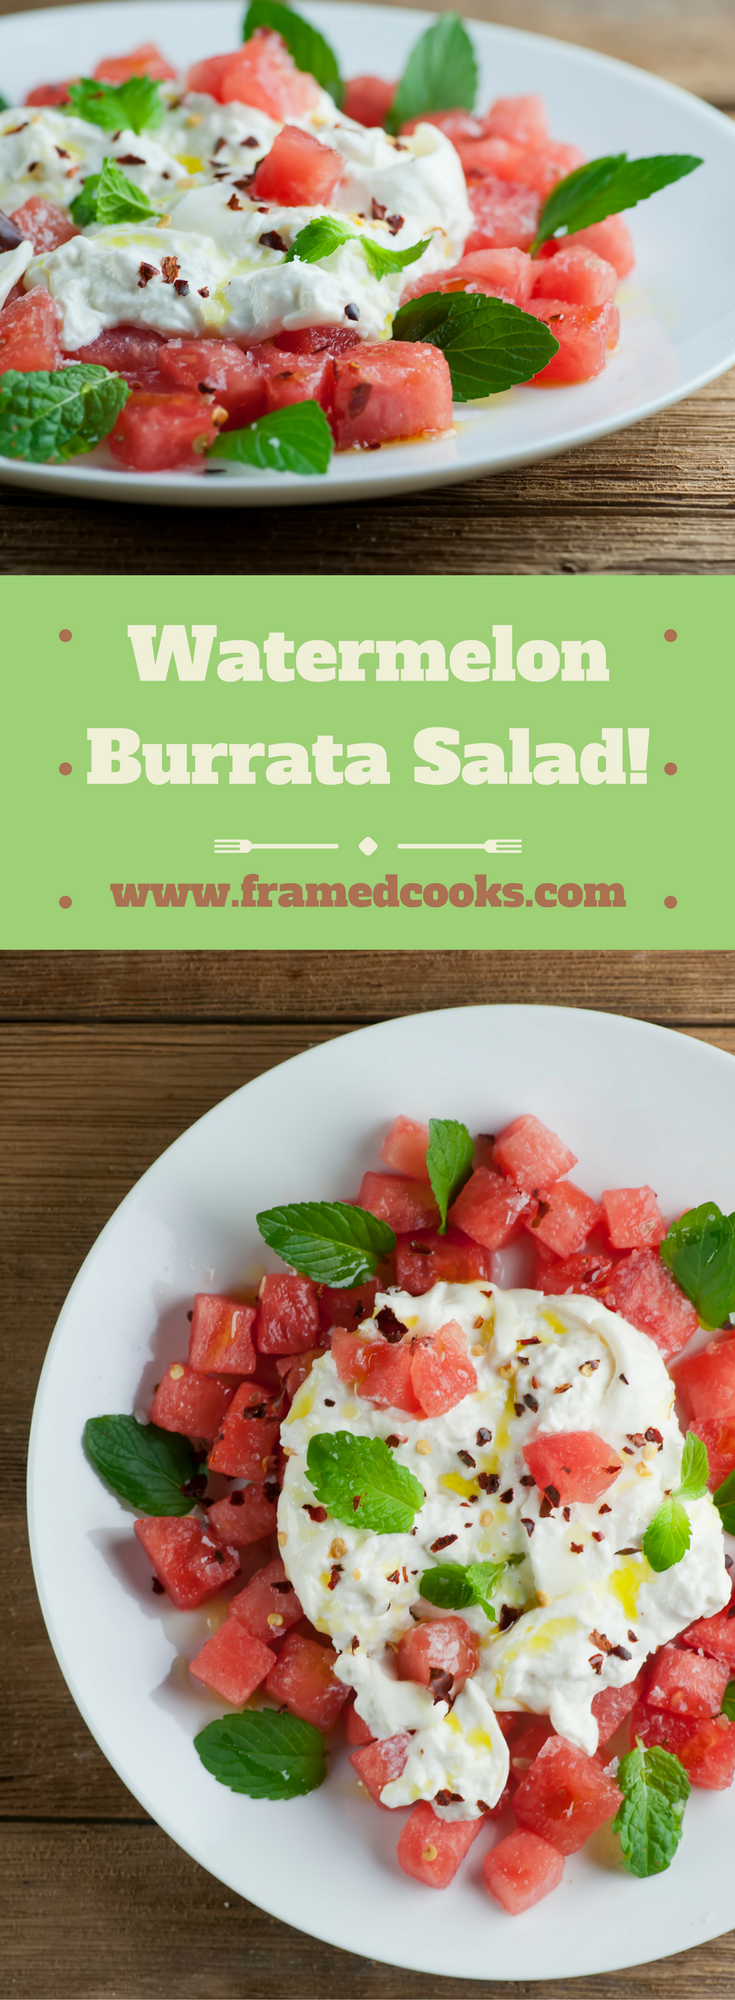 This easy recipe for watermelon burrata salad is quick and delicious way to welcome in summer!